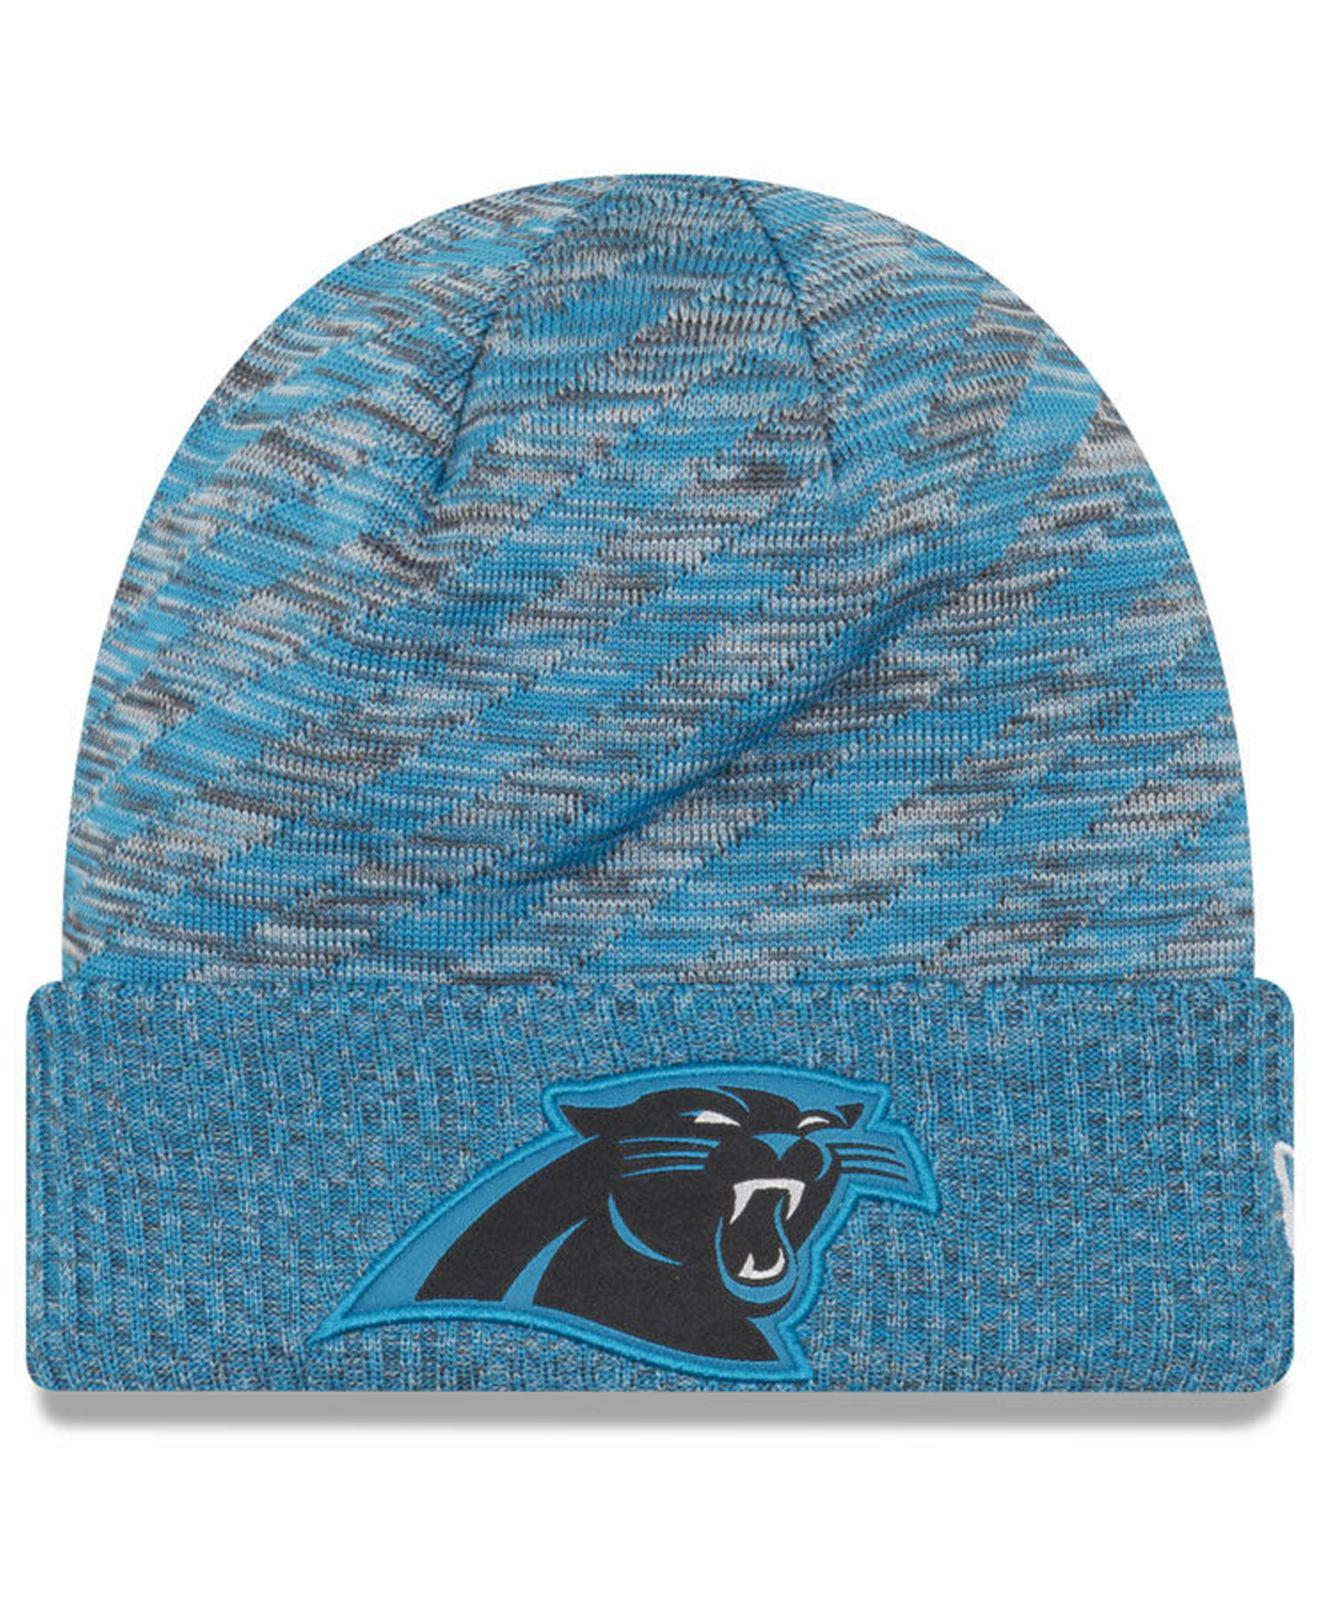 Lyst - Ktz Carolina Panthers Touch Down Knit Hat in Blue for Men 948e72f67